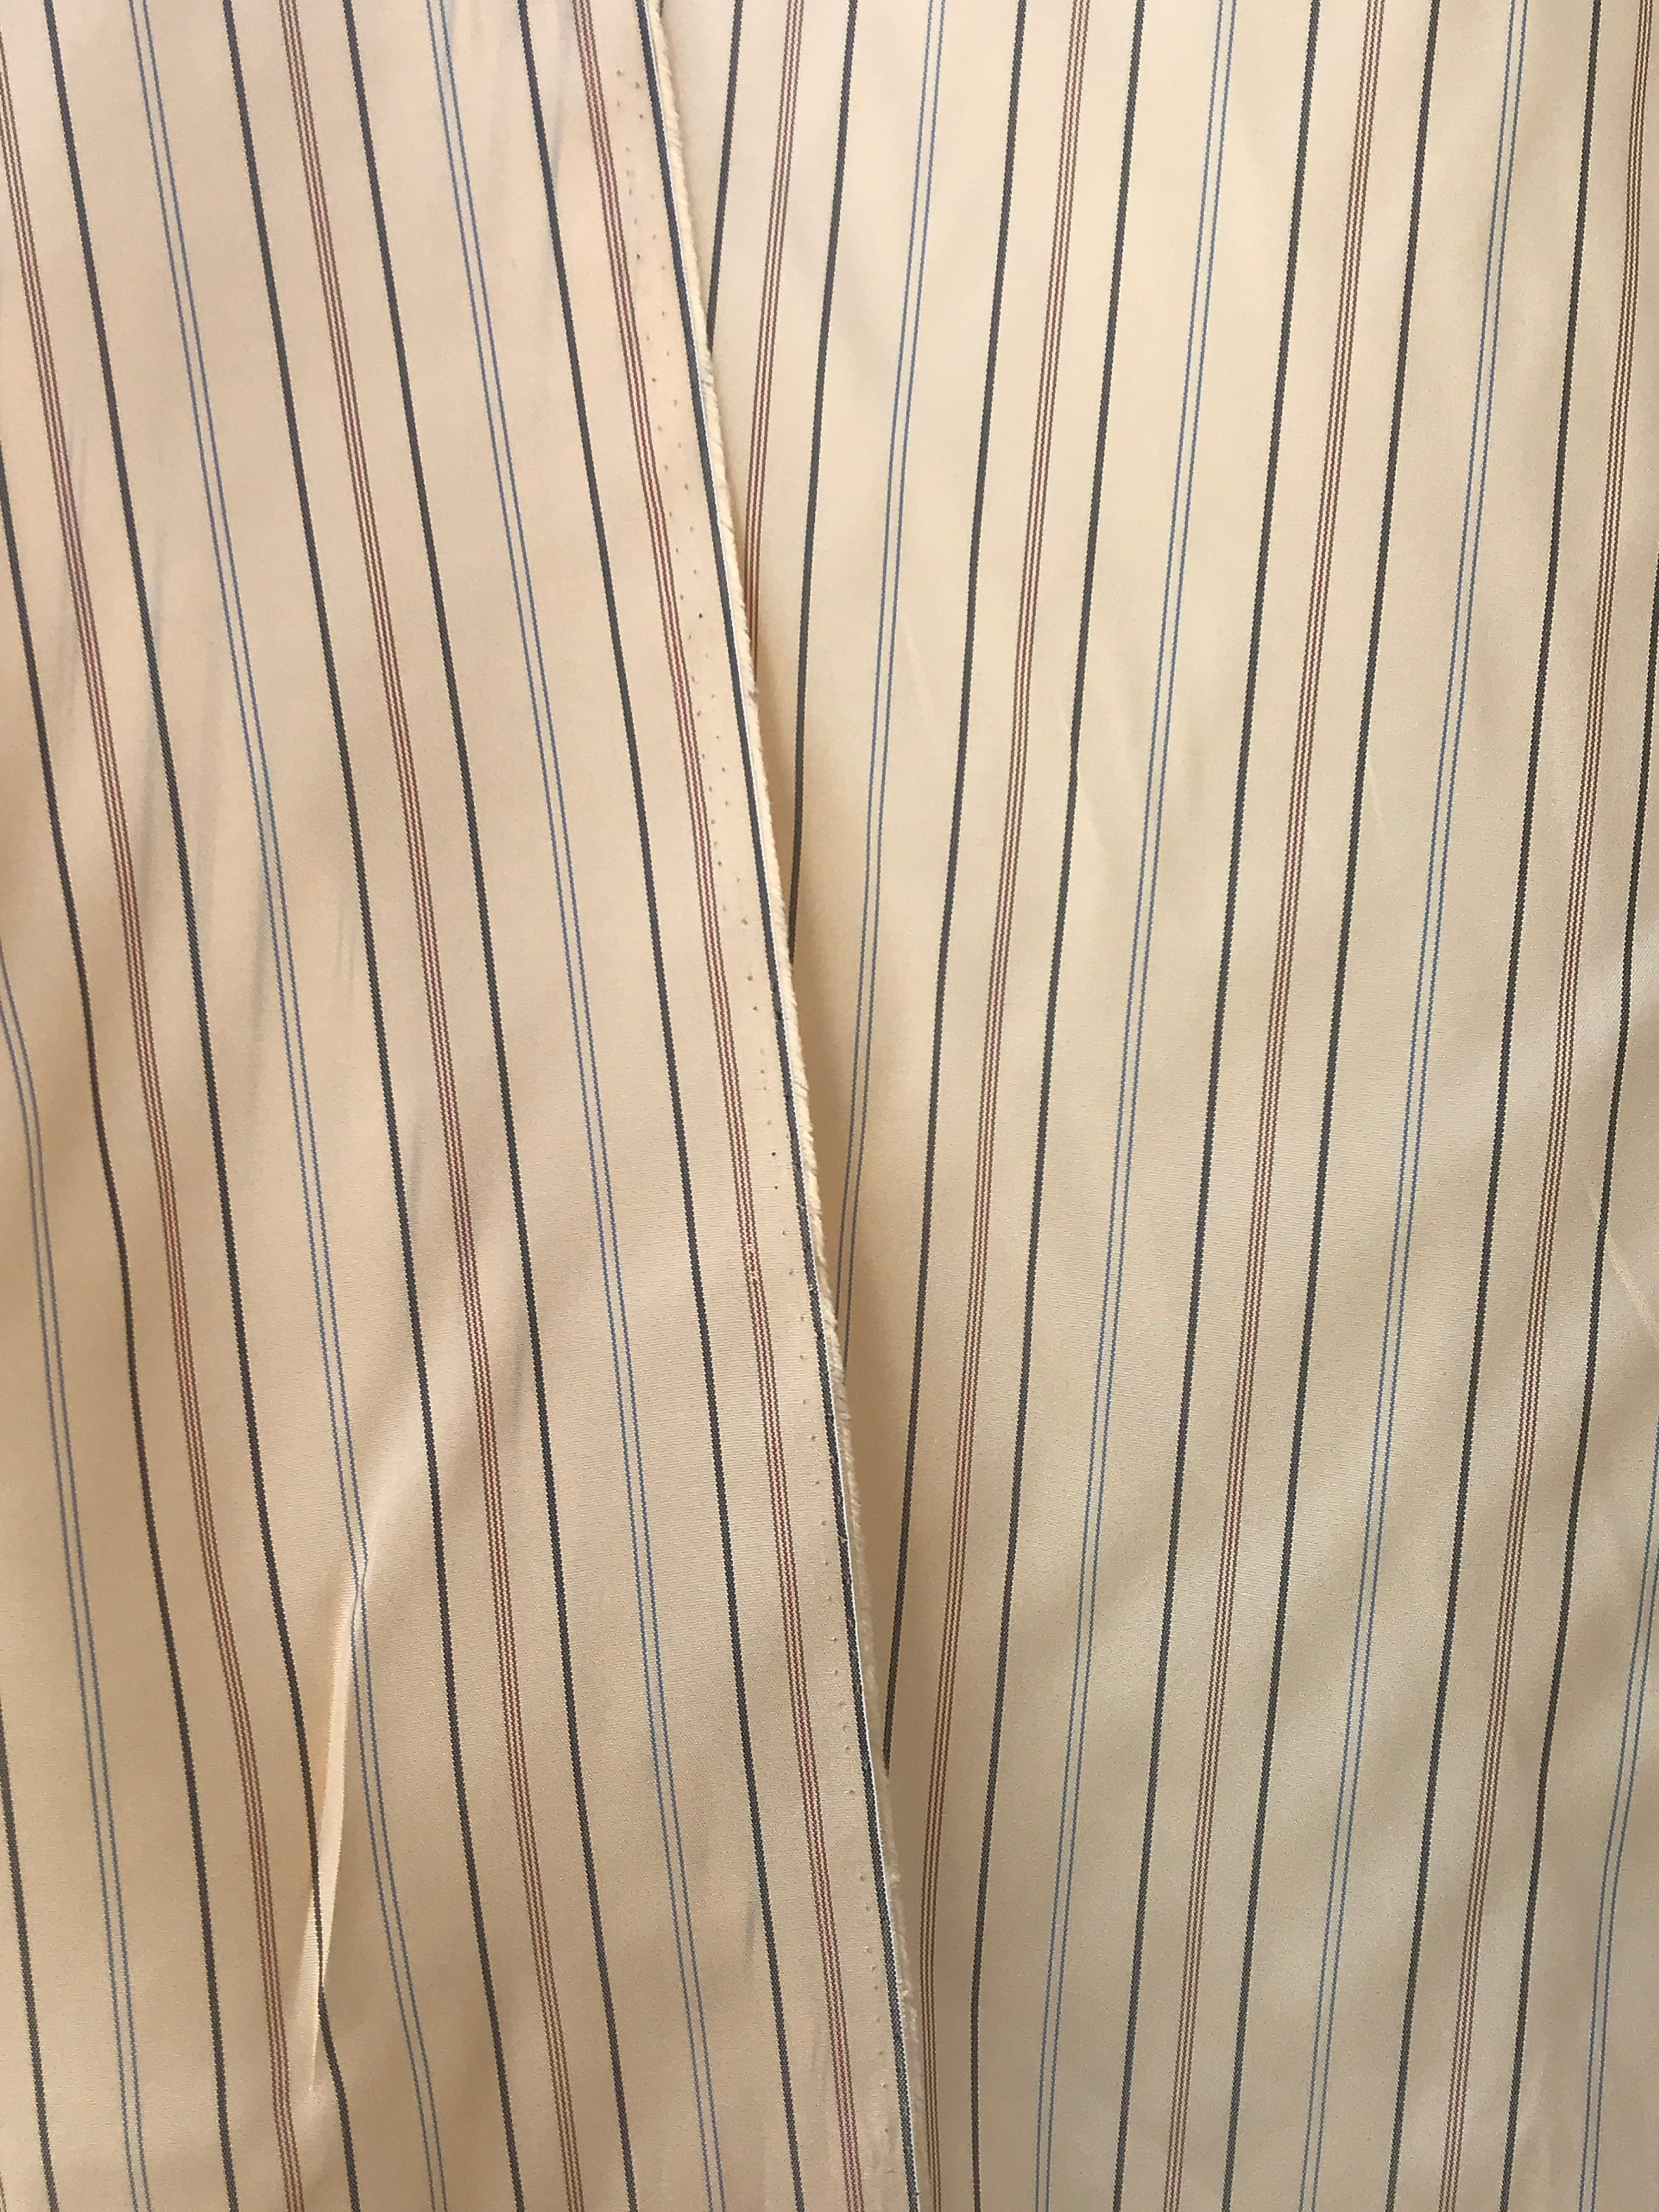 Striped lining fabric, Viscose Acetate, 5 meter lot  European production 150cm 60 inches wide